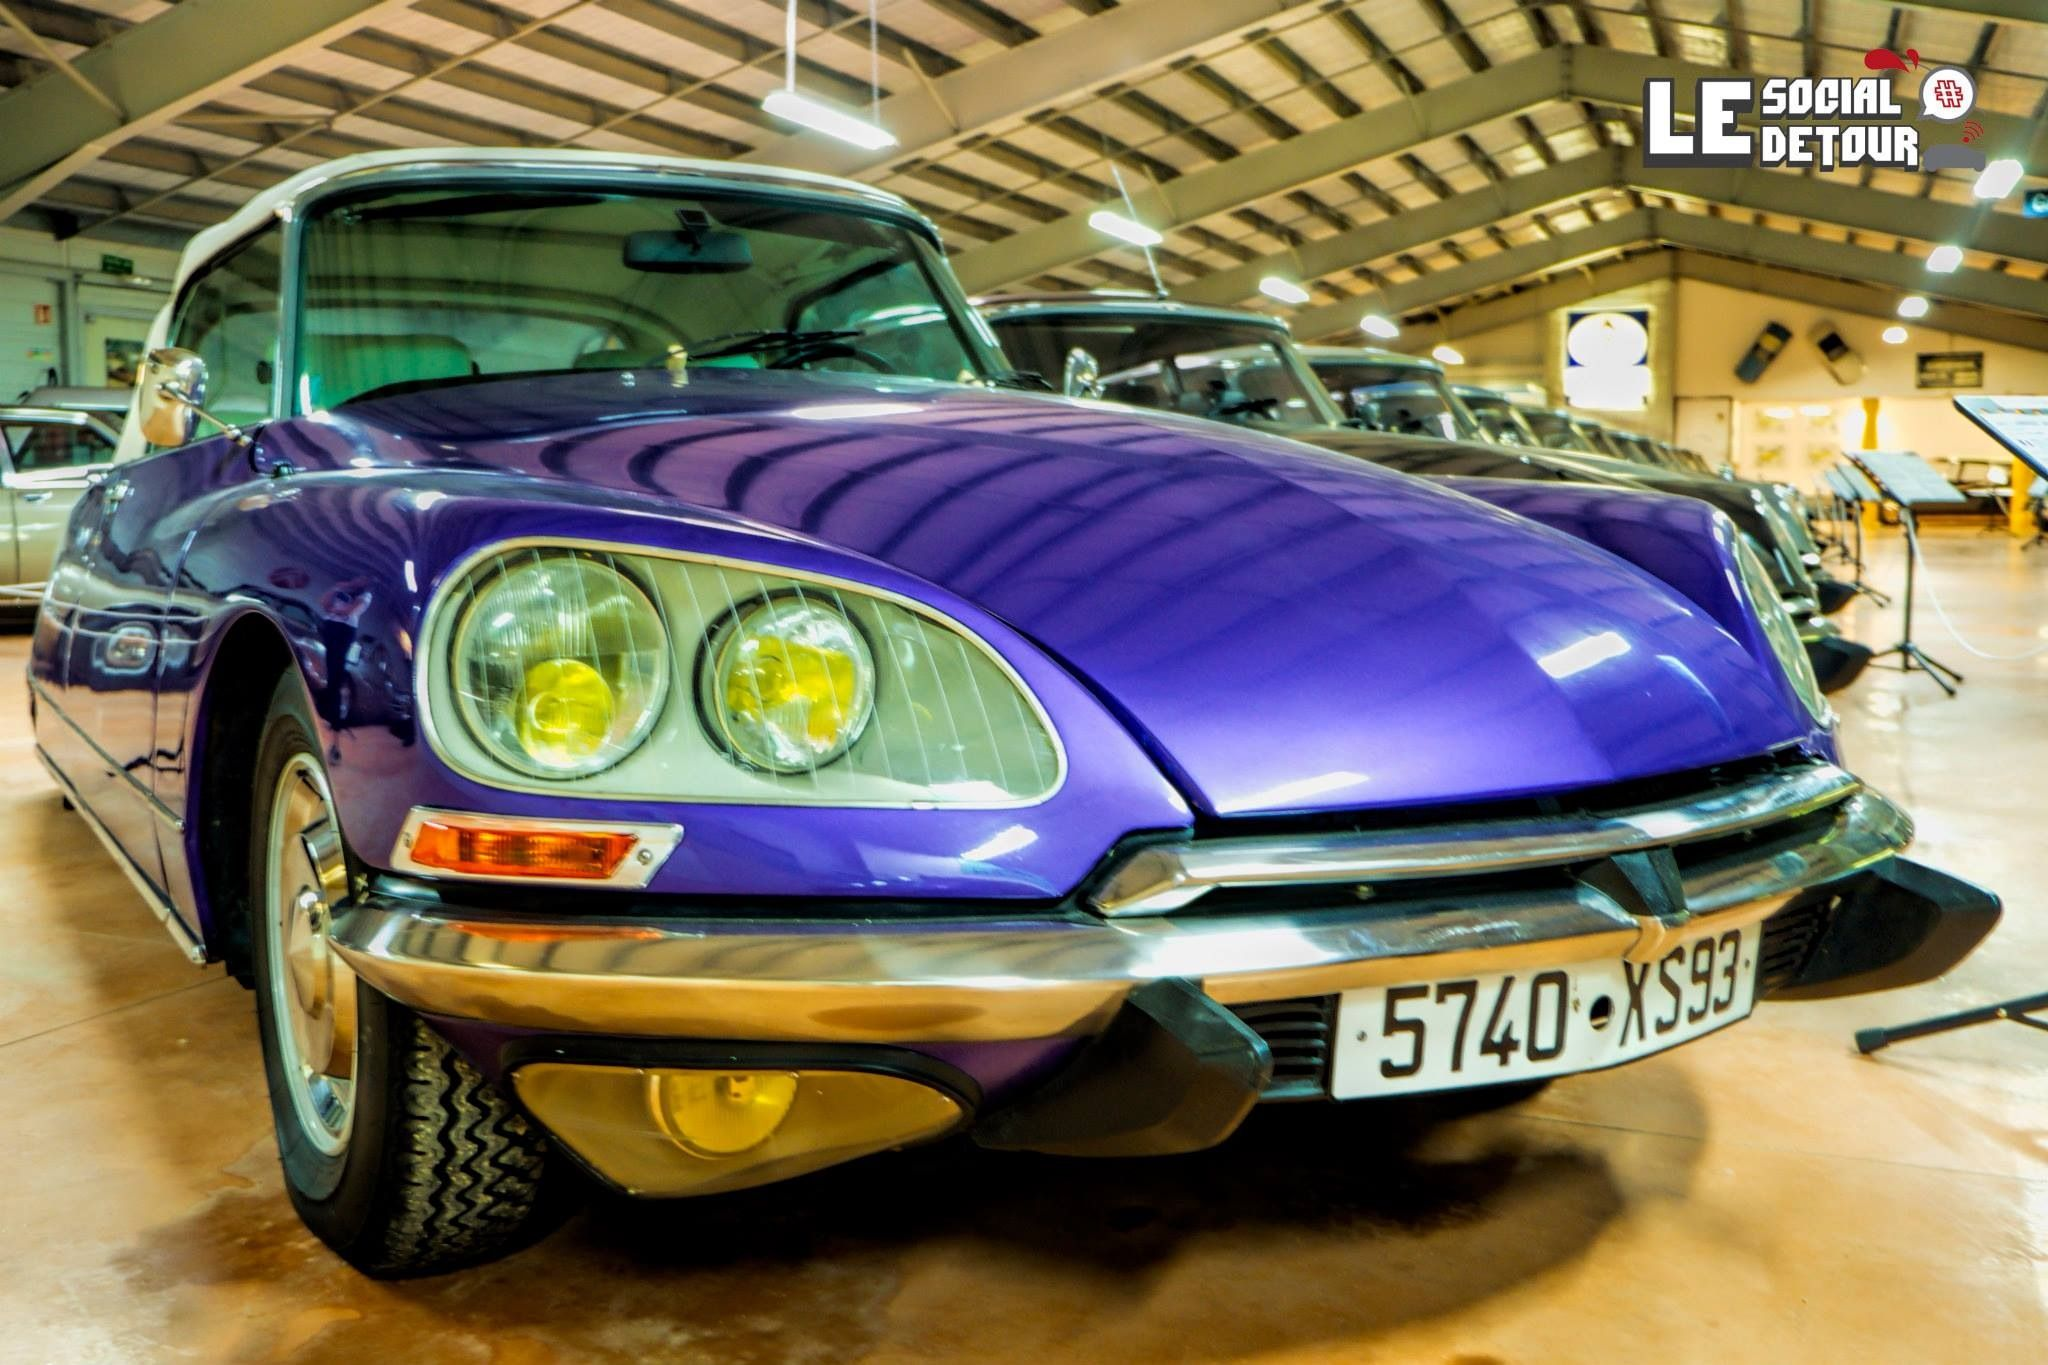 Citroën DS saying hello at the Citromuseum in Castellane, France. Spotted on #LeSocialDetour!